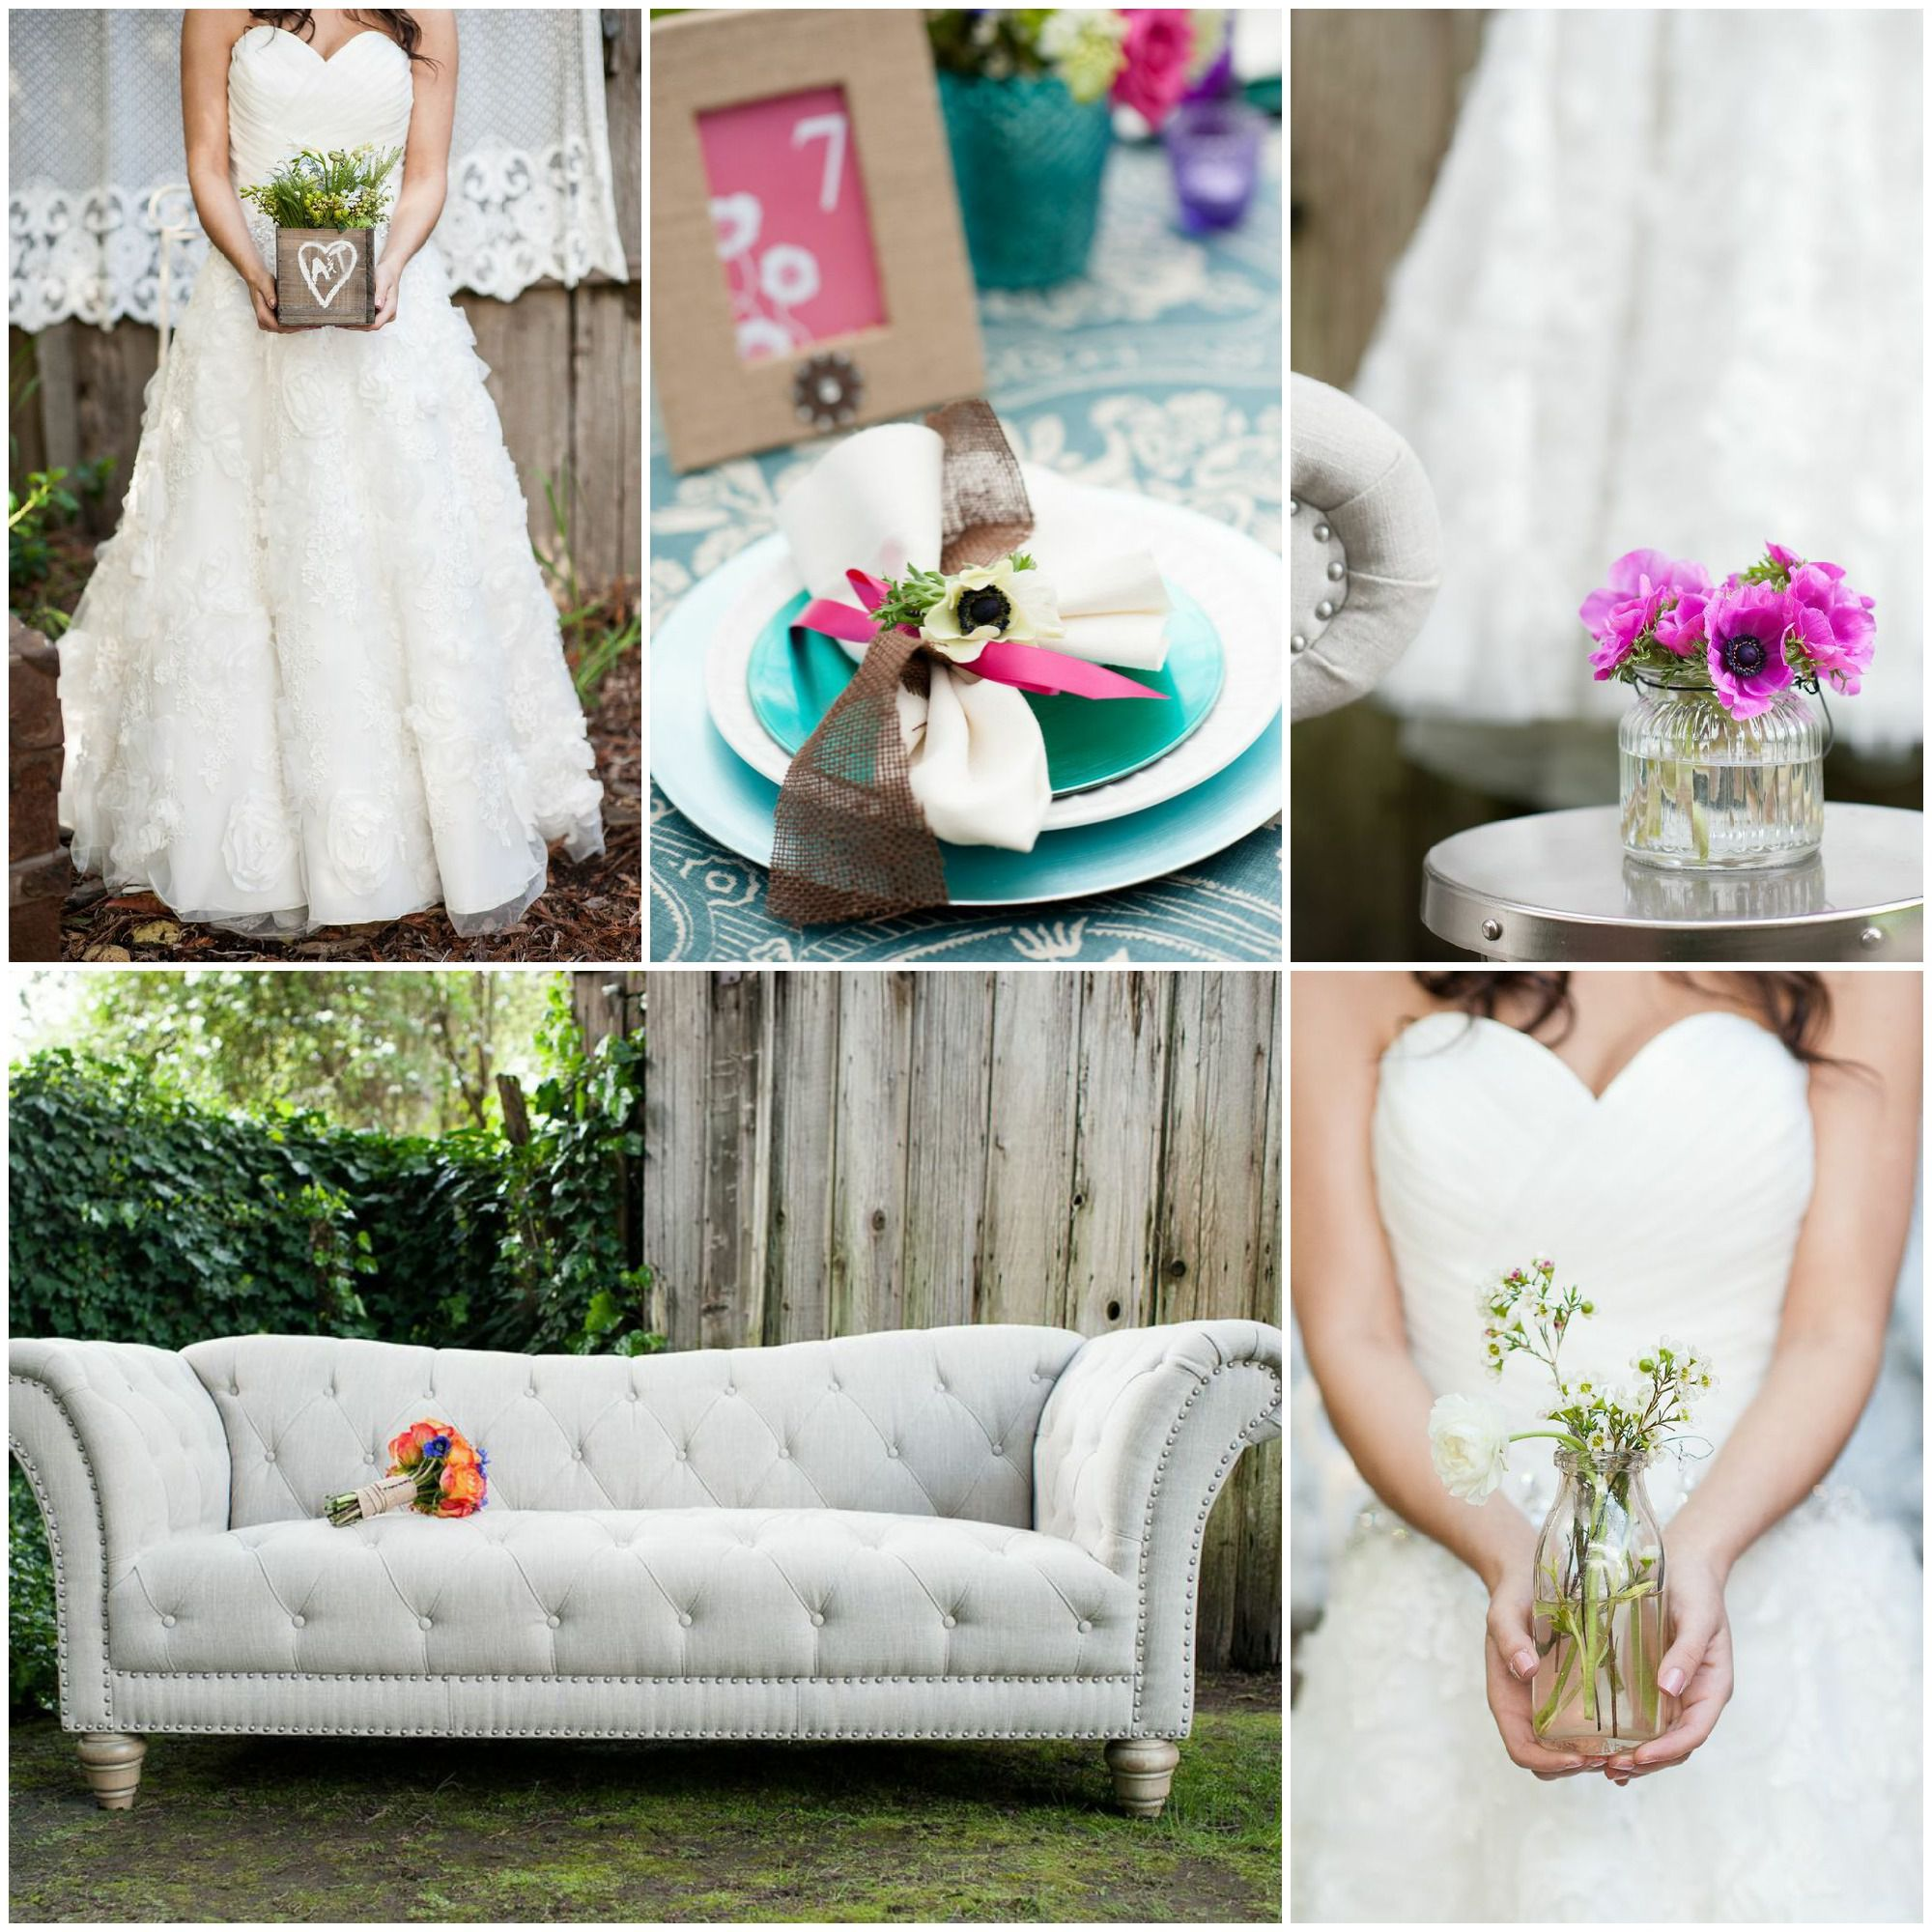 Wedding Ideas And Inspirations: Bright & Colorful Wedding Inspiration